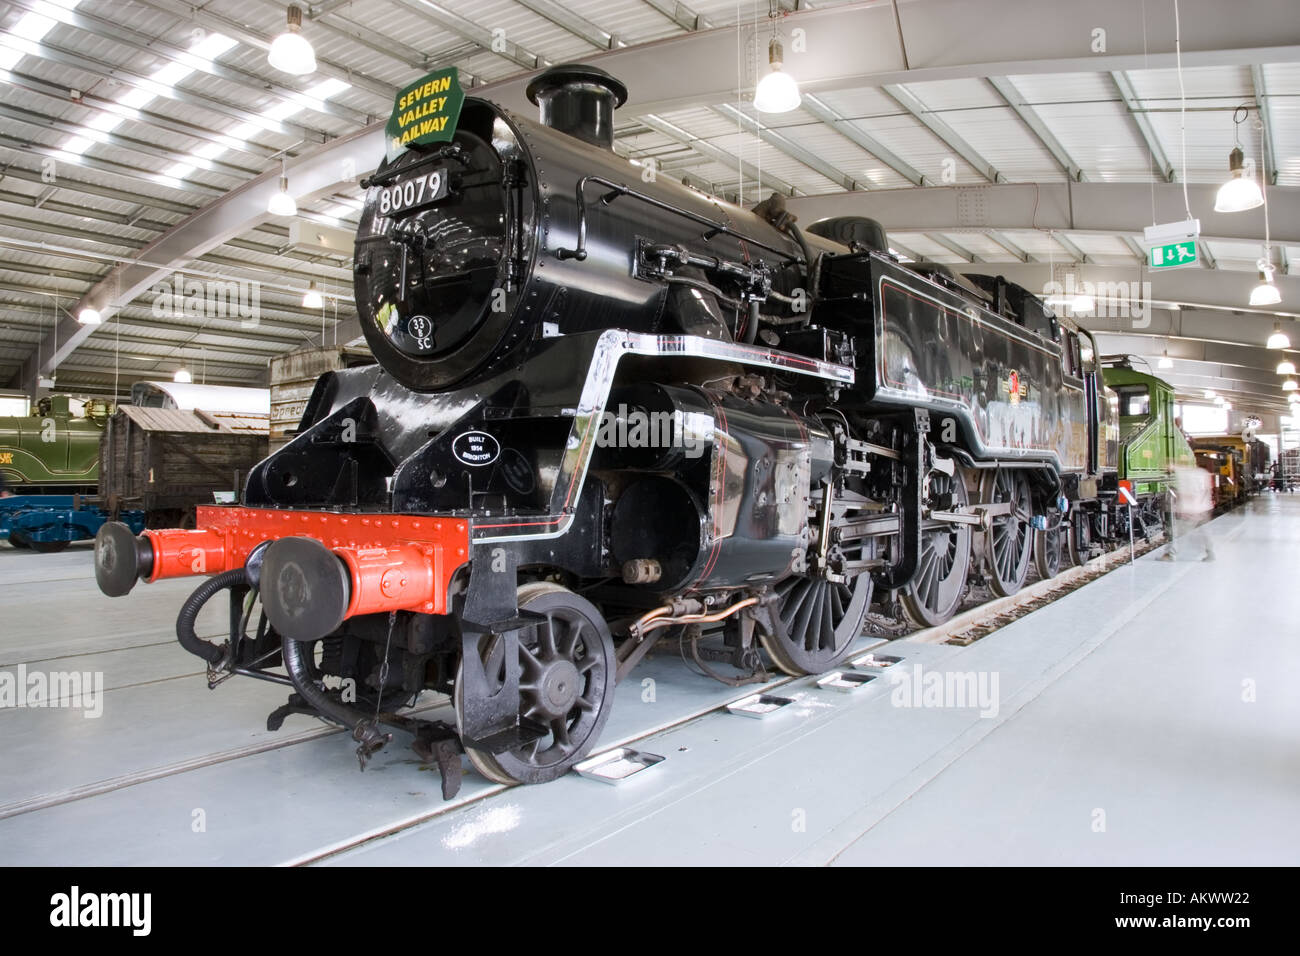 Severn Valley Railway locomotive at Locomotion museum Shildon Durham UK - Stock Image